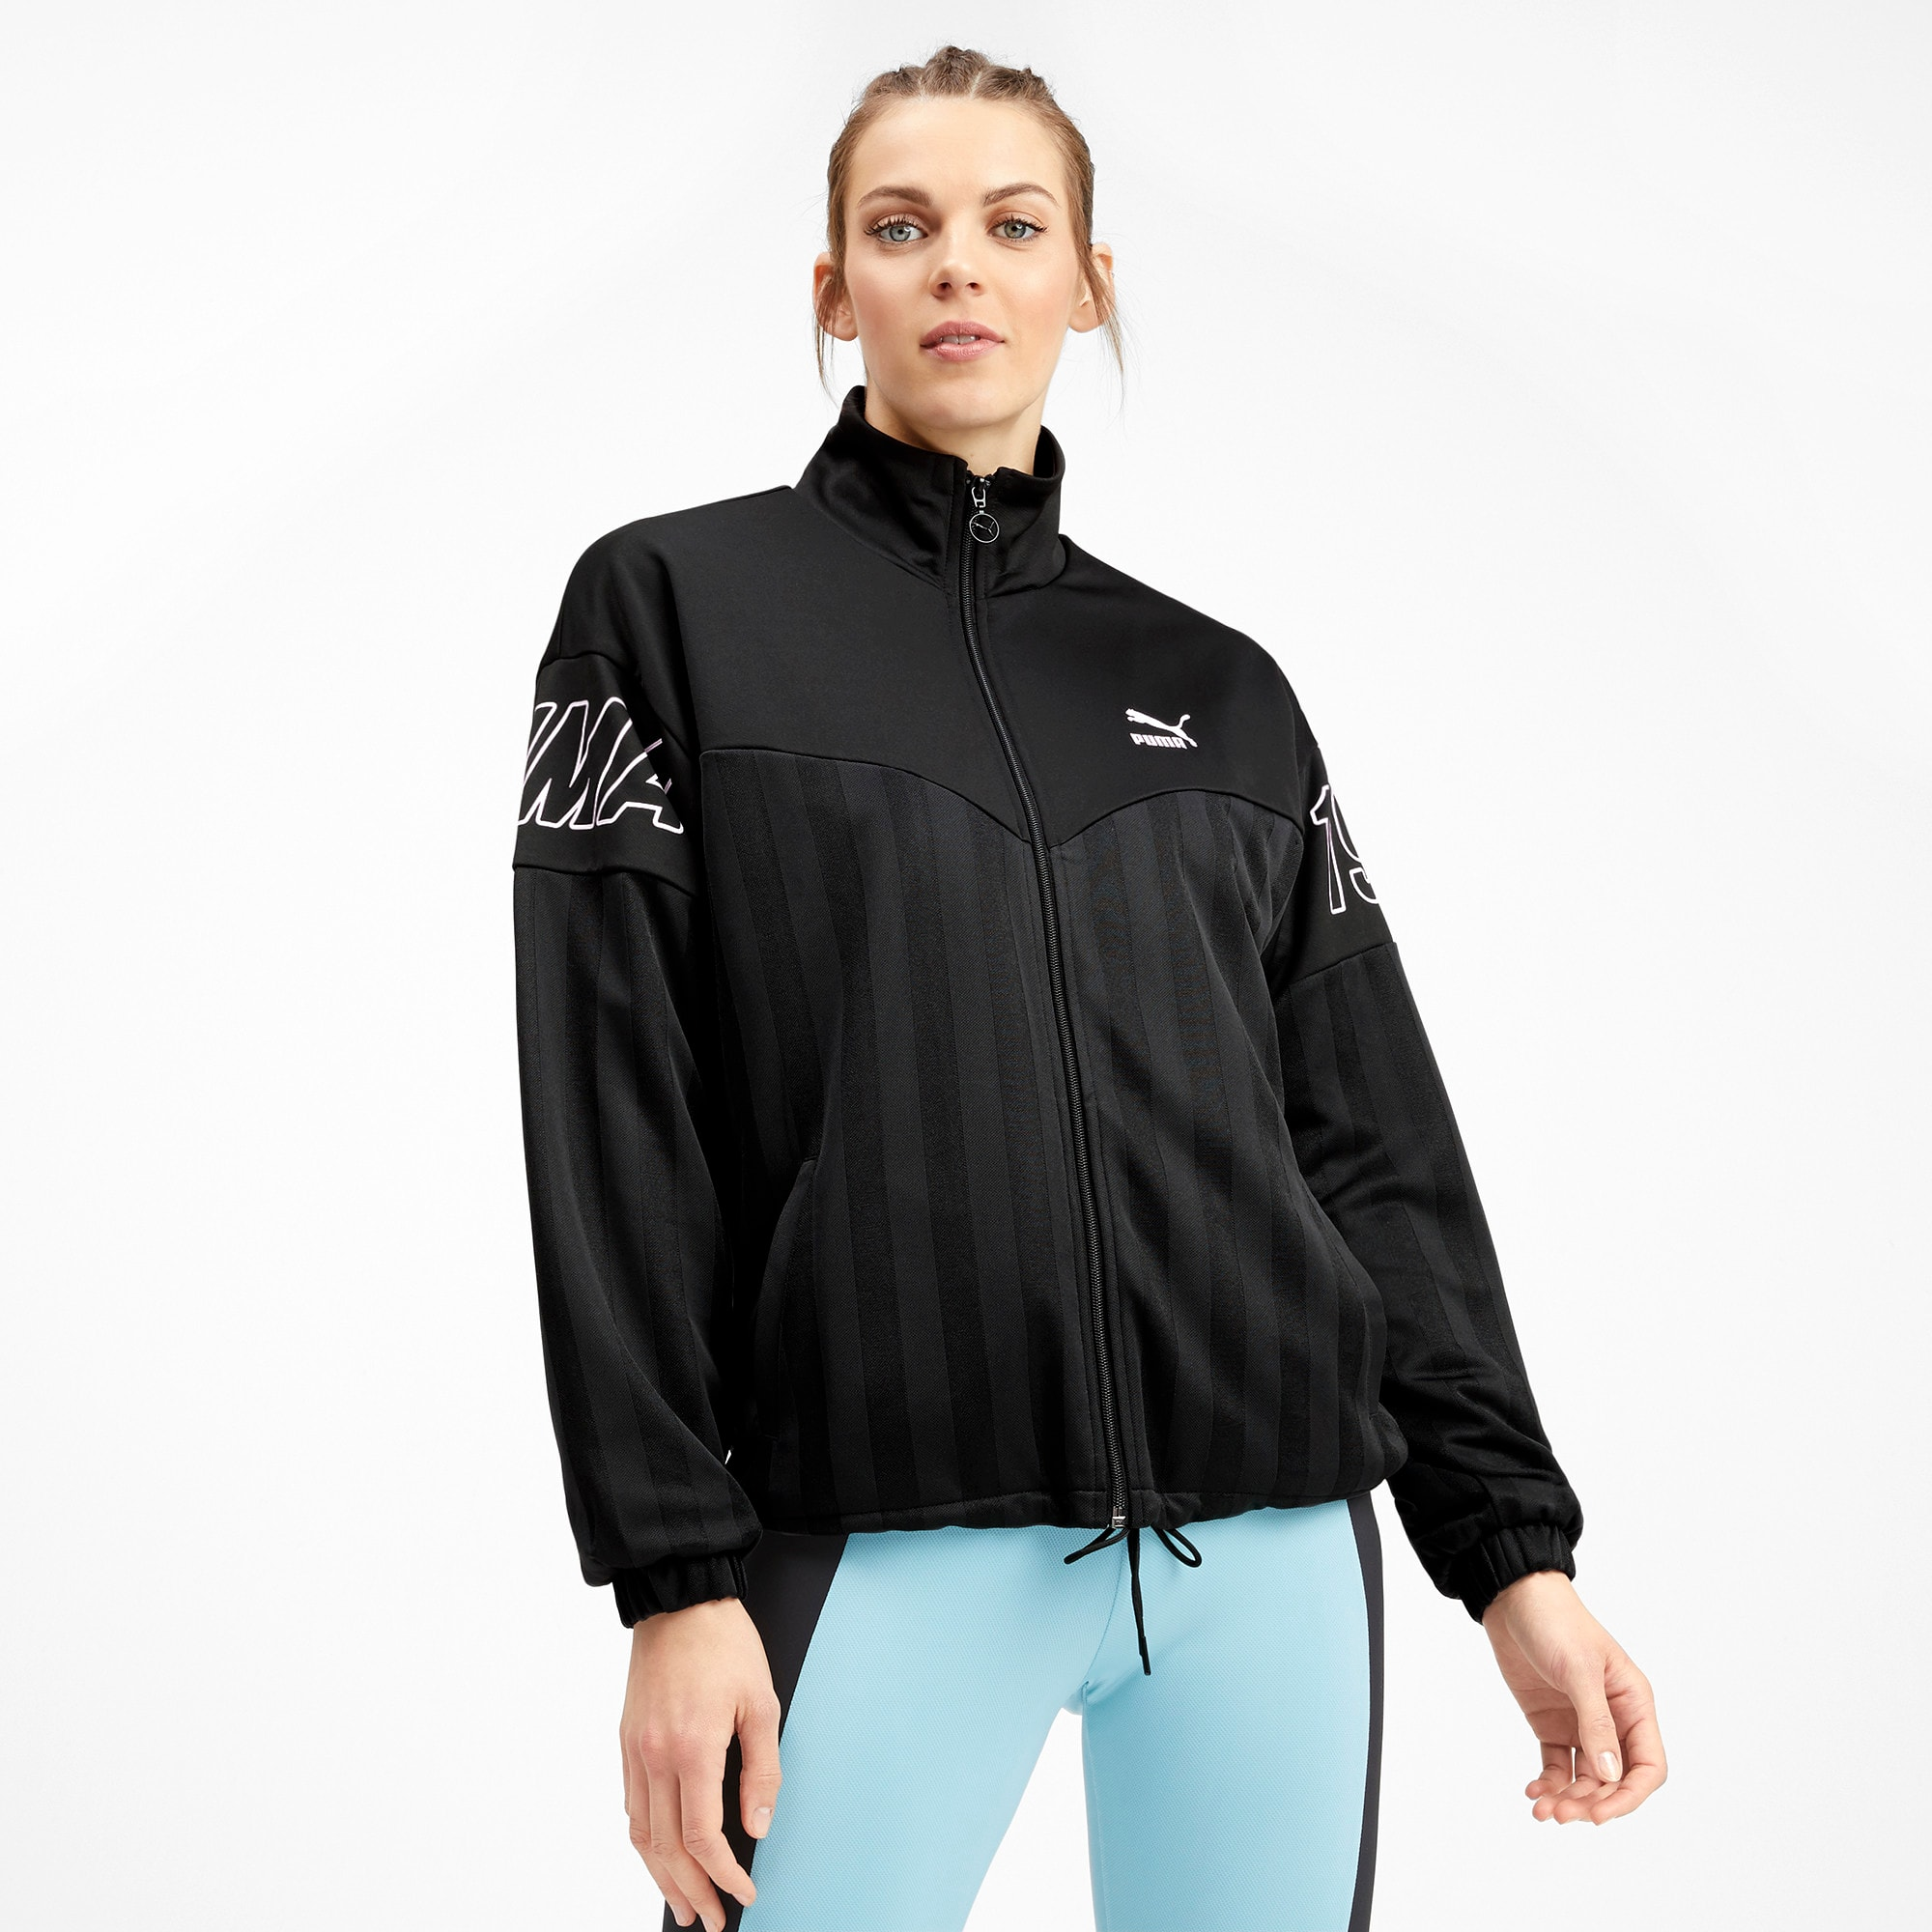 Thumbnail 2 of luXTG Jacquard Women's Track Jacket, Puma Black, medium